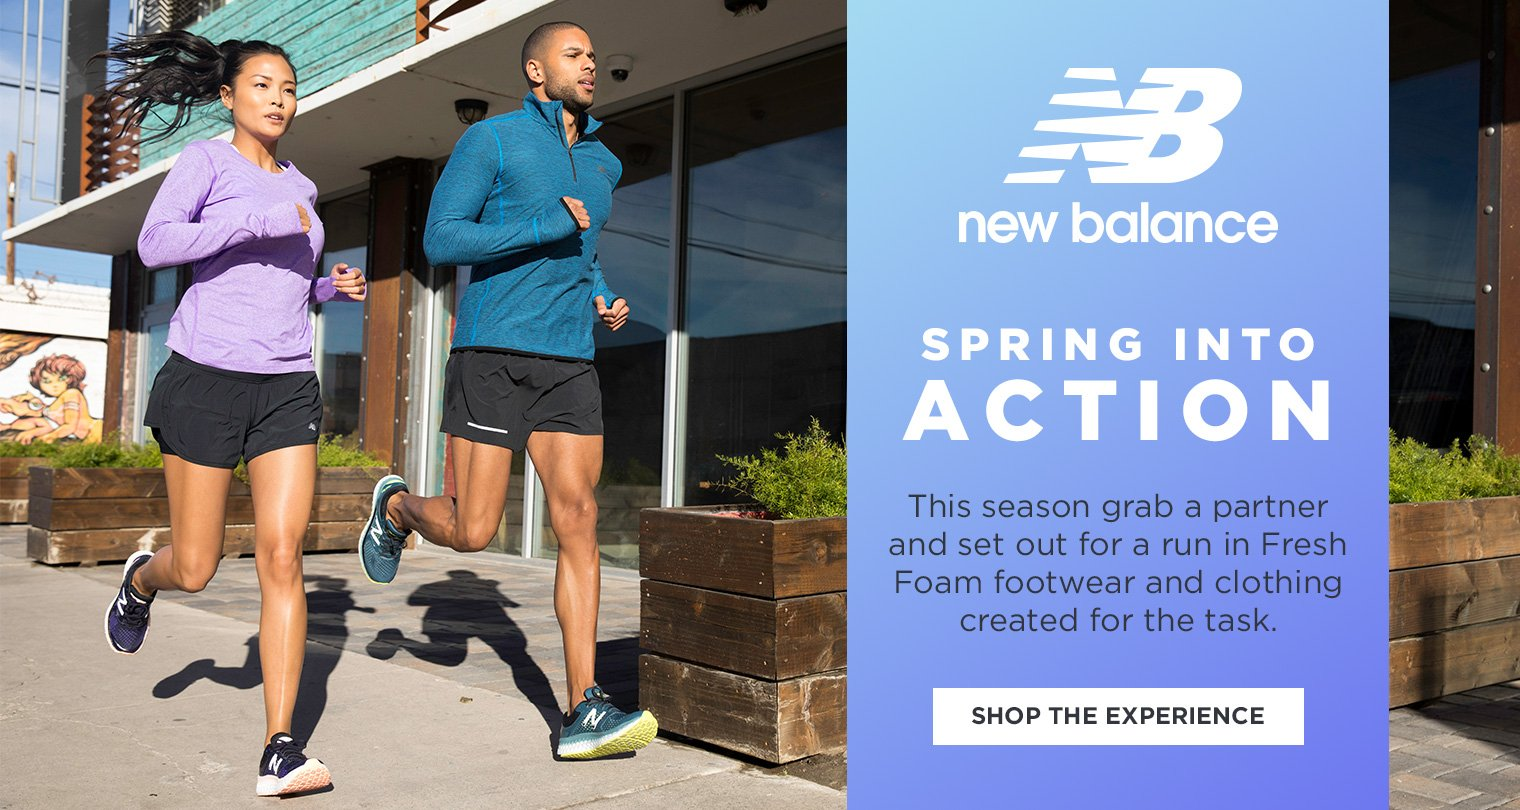 New Balance. Spring into Action. This season grab a partner and set out for a run in Fresh Foam footwear and clothing created for the task. Shop The Experience.